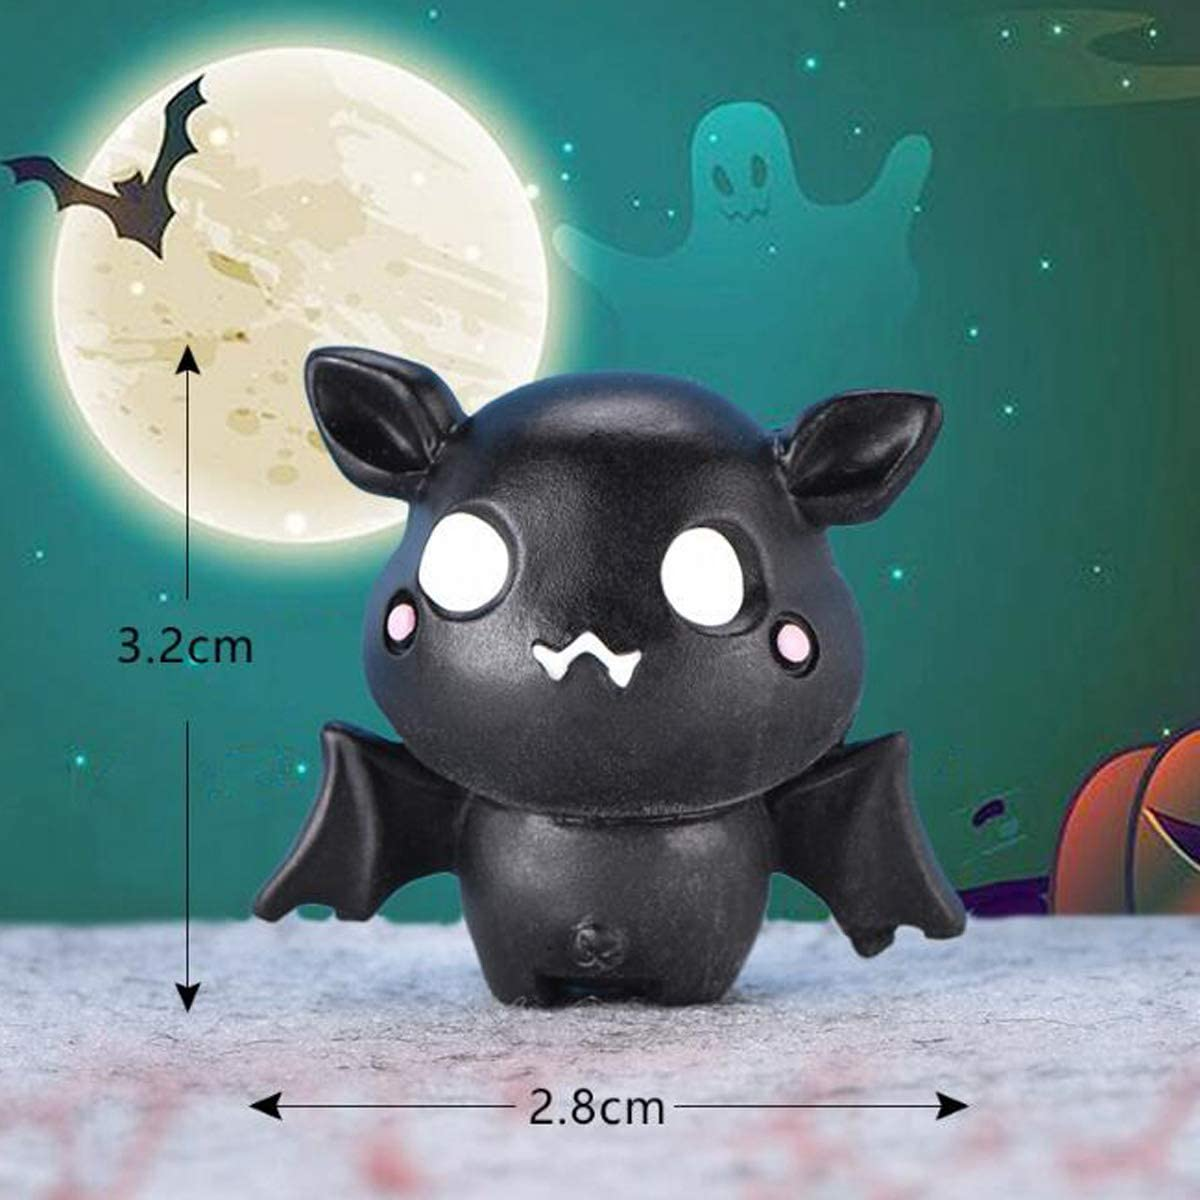 Fairy Tale Garden Toy Collection Cake Topper Miniature Landscape Pupdoge 10 Pcs Miniature Halloween Figurines,5 Styles,Lovely Resin Classic Cartoon Characters Collection Halloween Theme Doll House